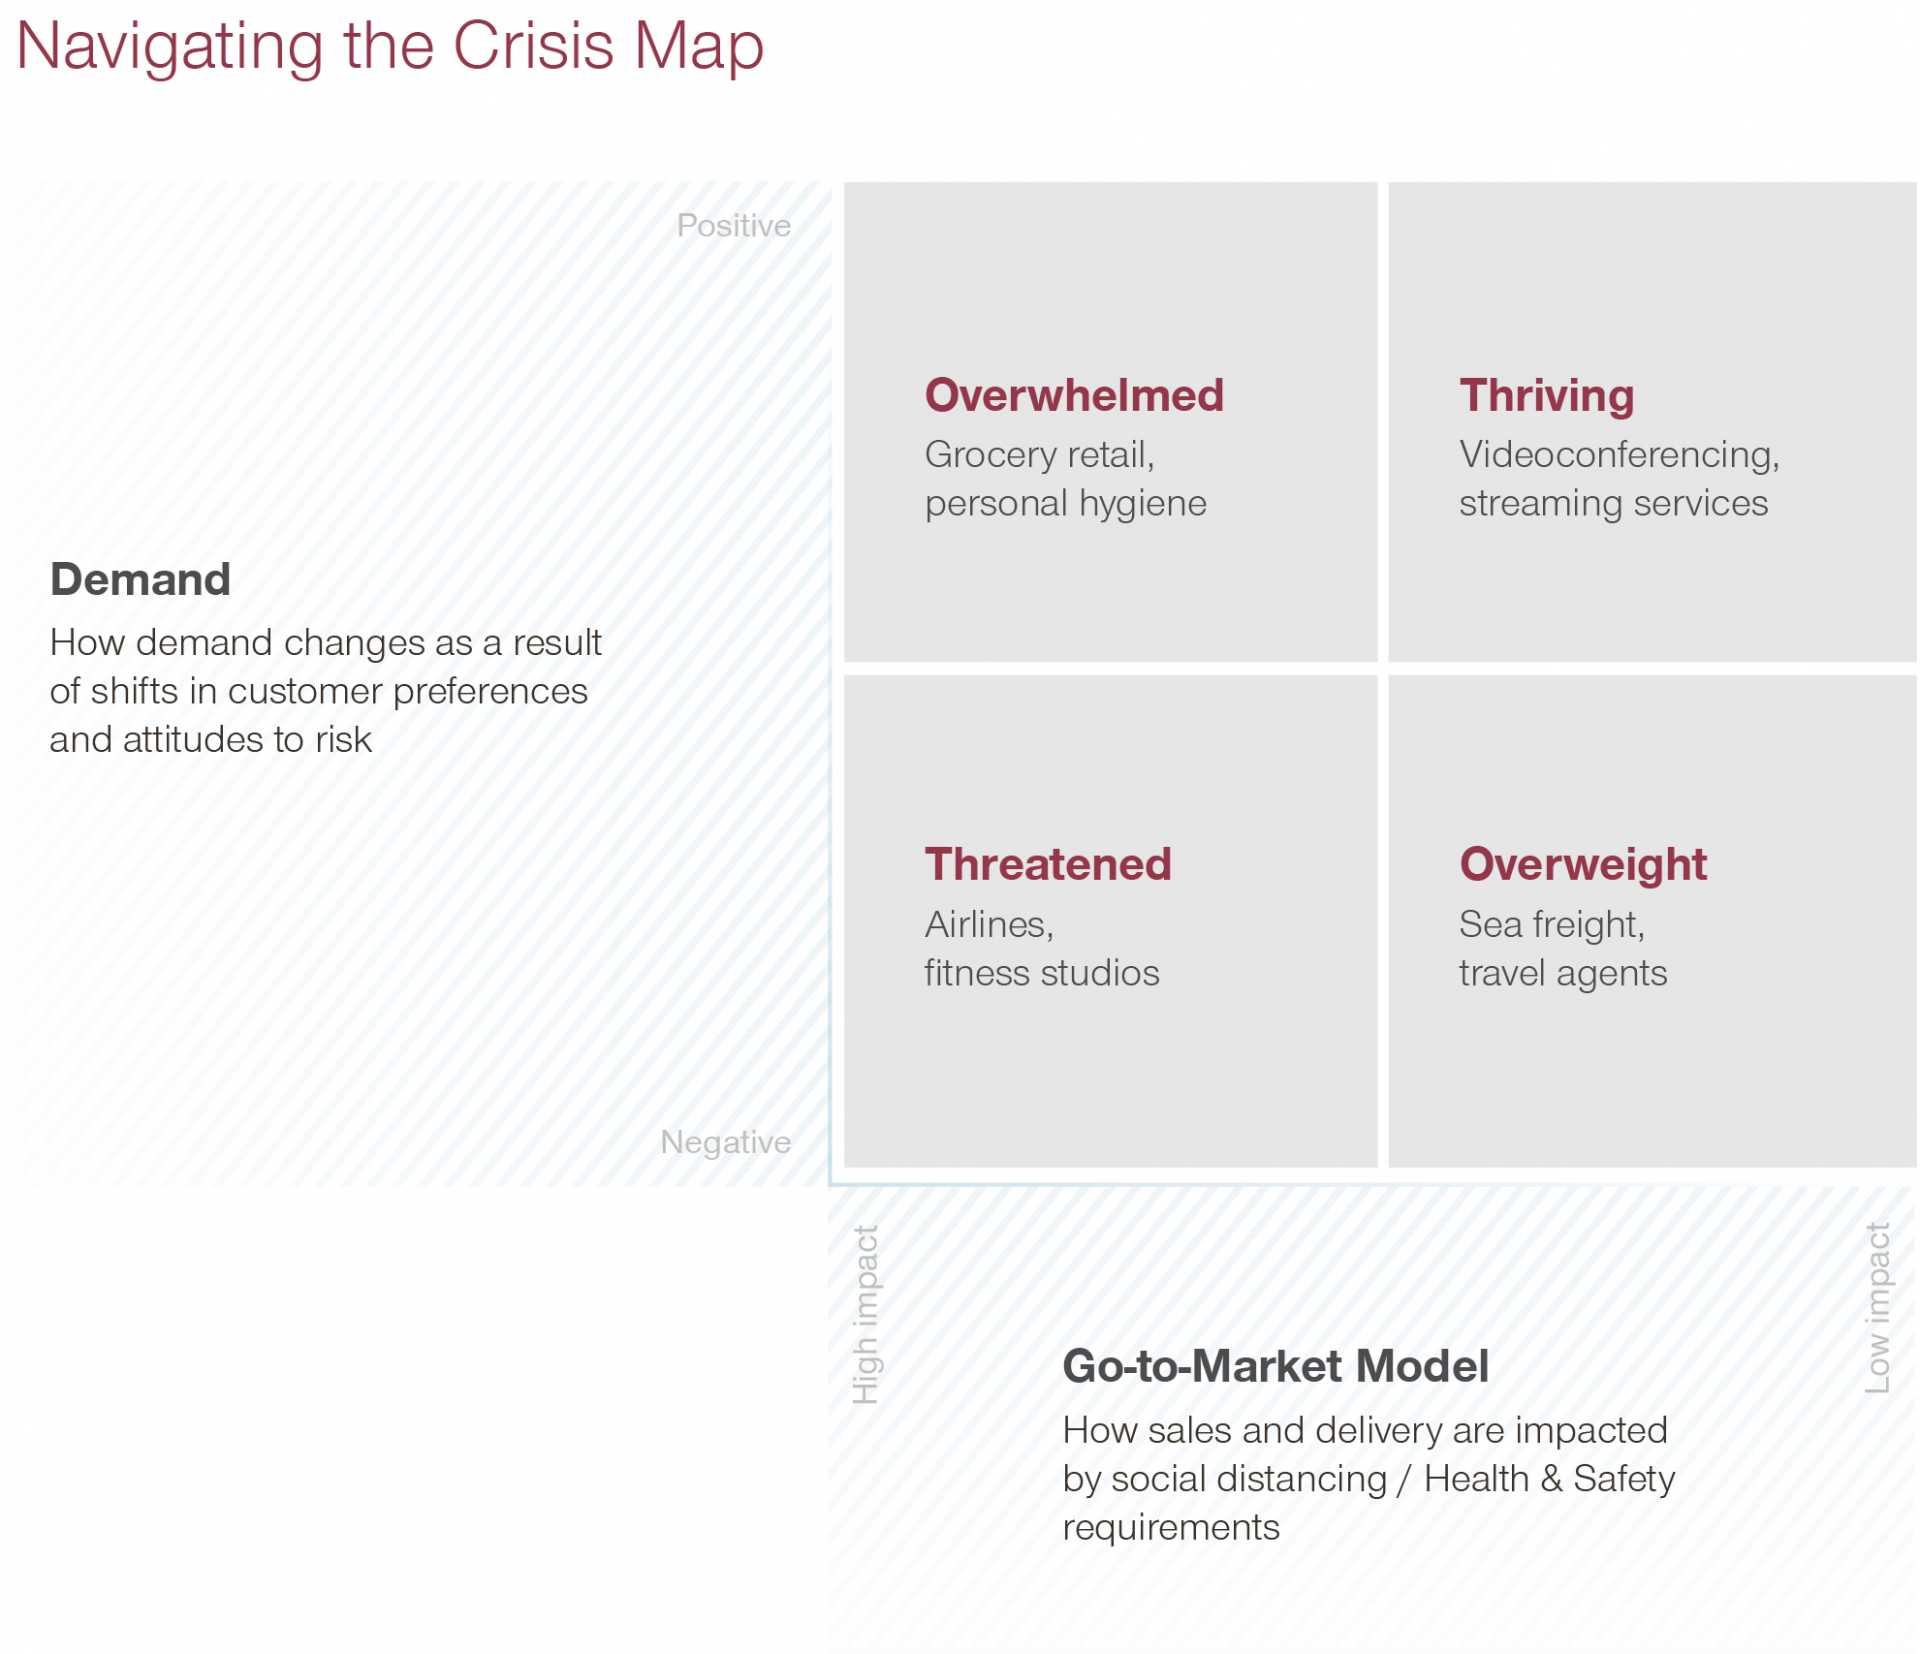 Commercial Agility - Navigating the Covid-19 crisis map - Simon Kucher Go to Market Innovation